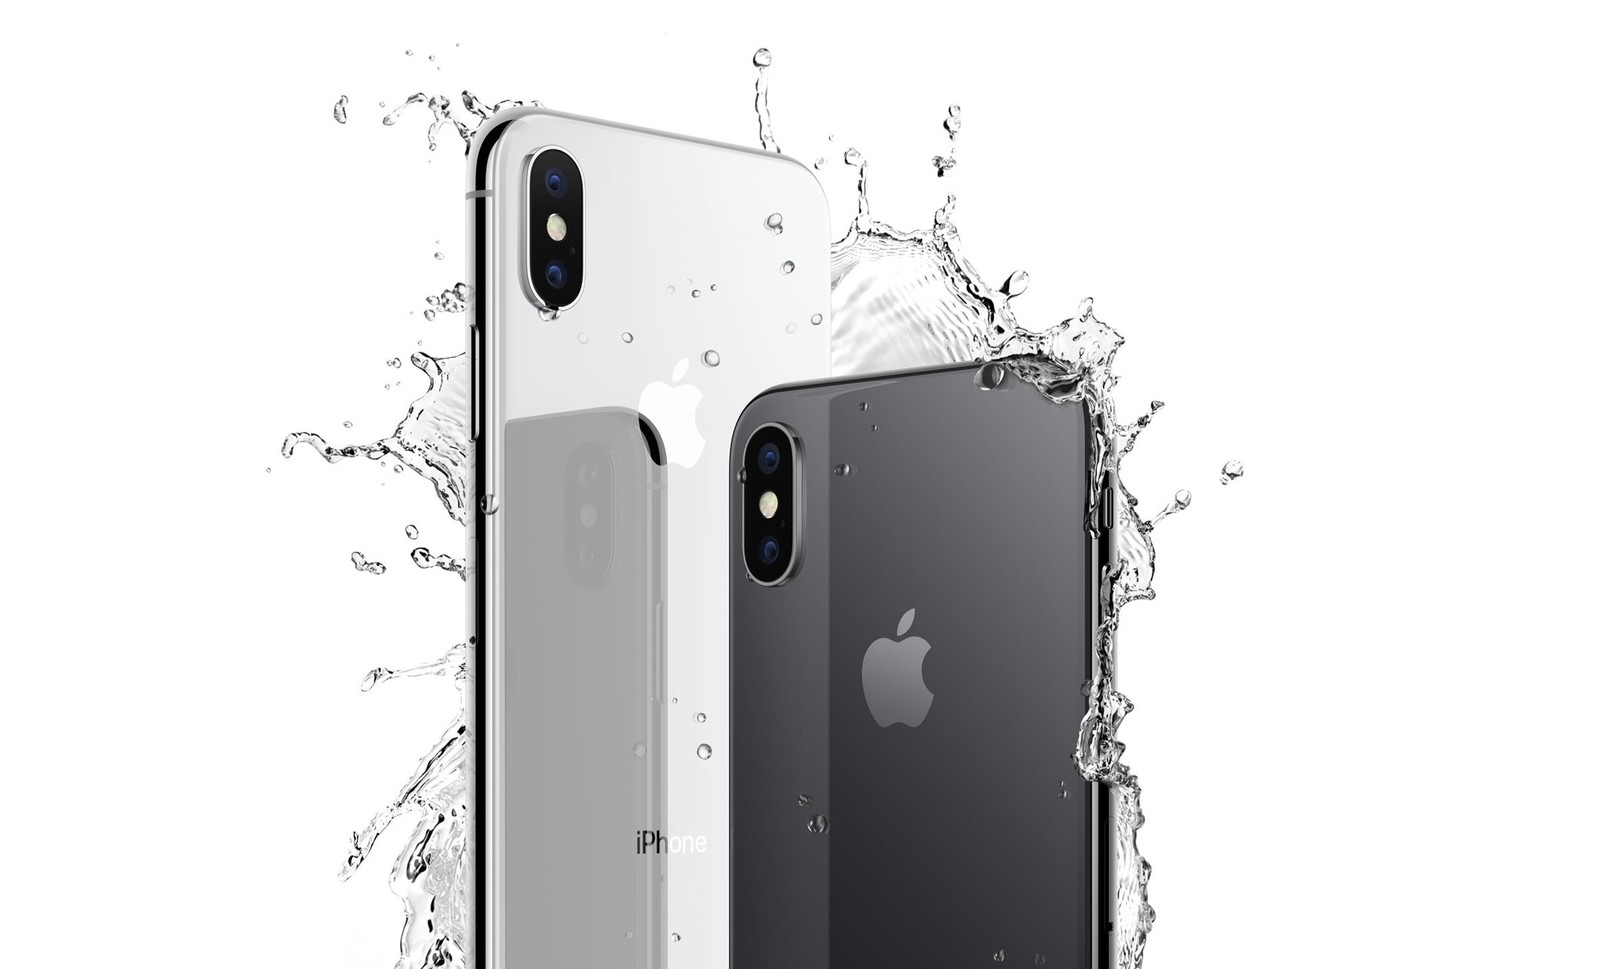 dfa9ba8e8 Best Waterproof Cases for iPhone X in 2019 | iMore